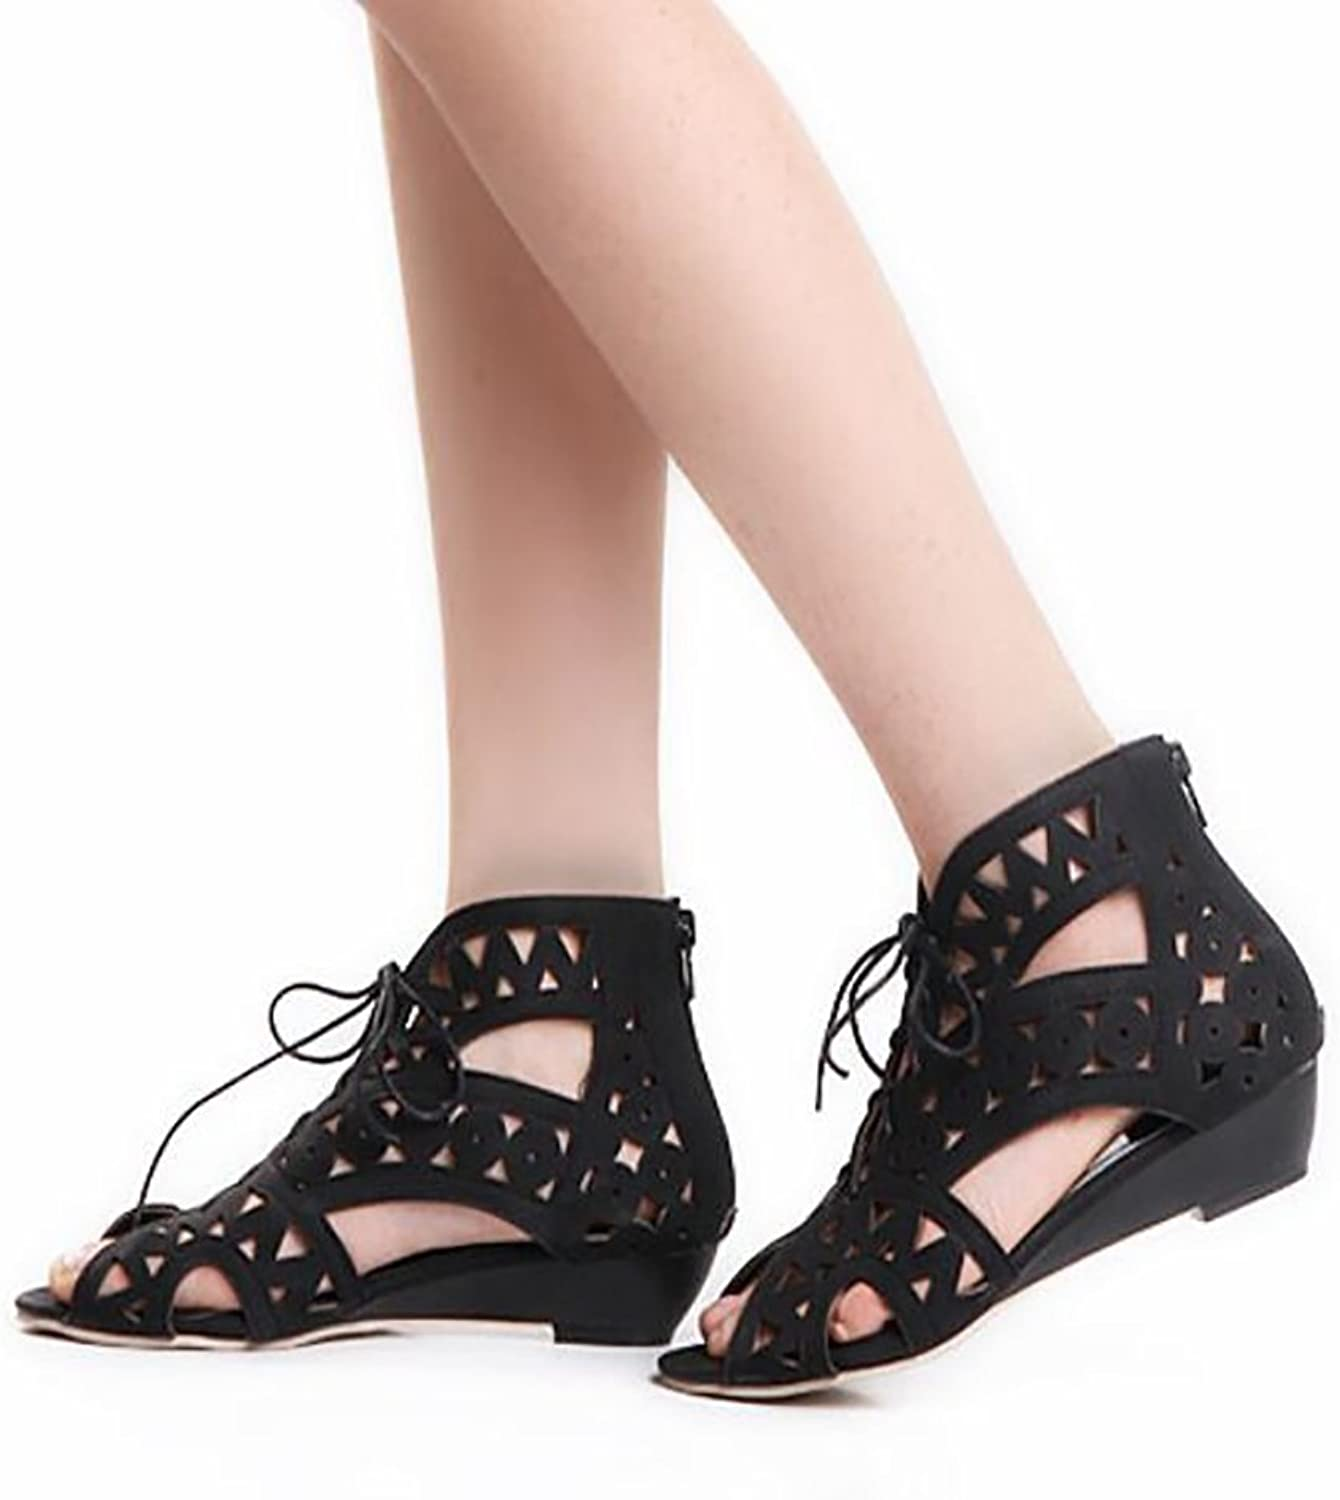 Summer Sandals Slipper Open Toe Ladies Low-Heeled Hollow Lace Lightweight Sandals,Black,36